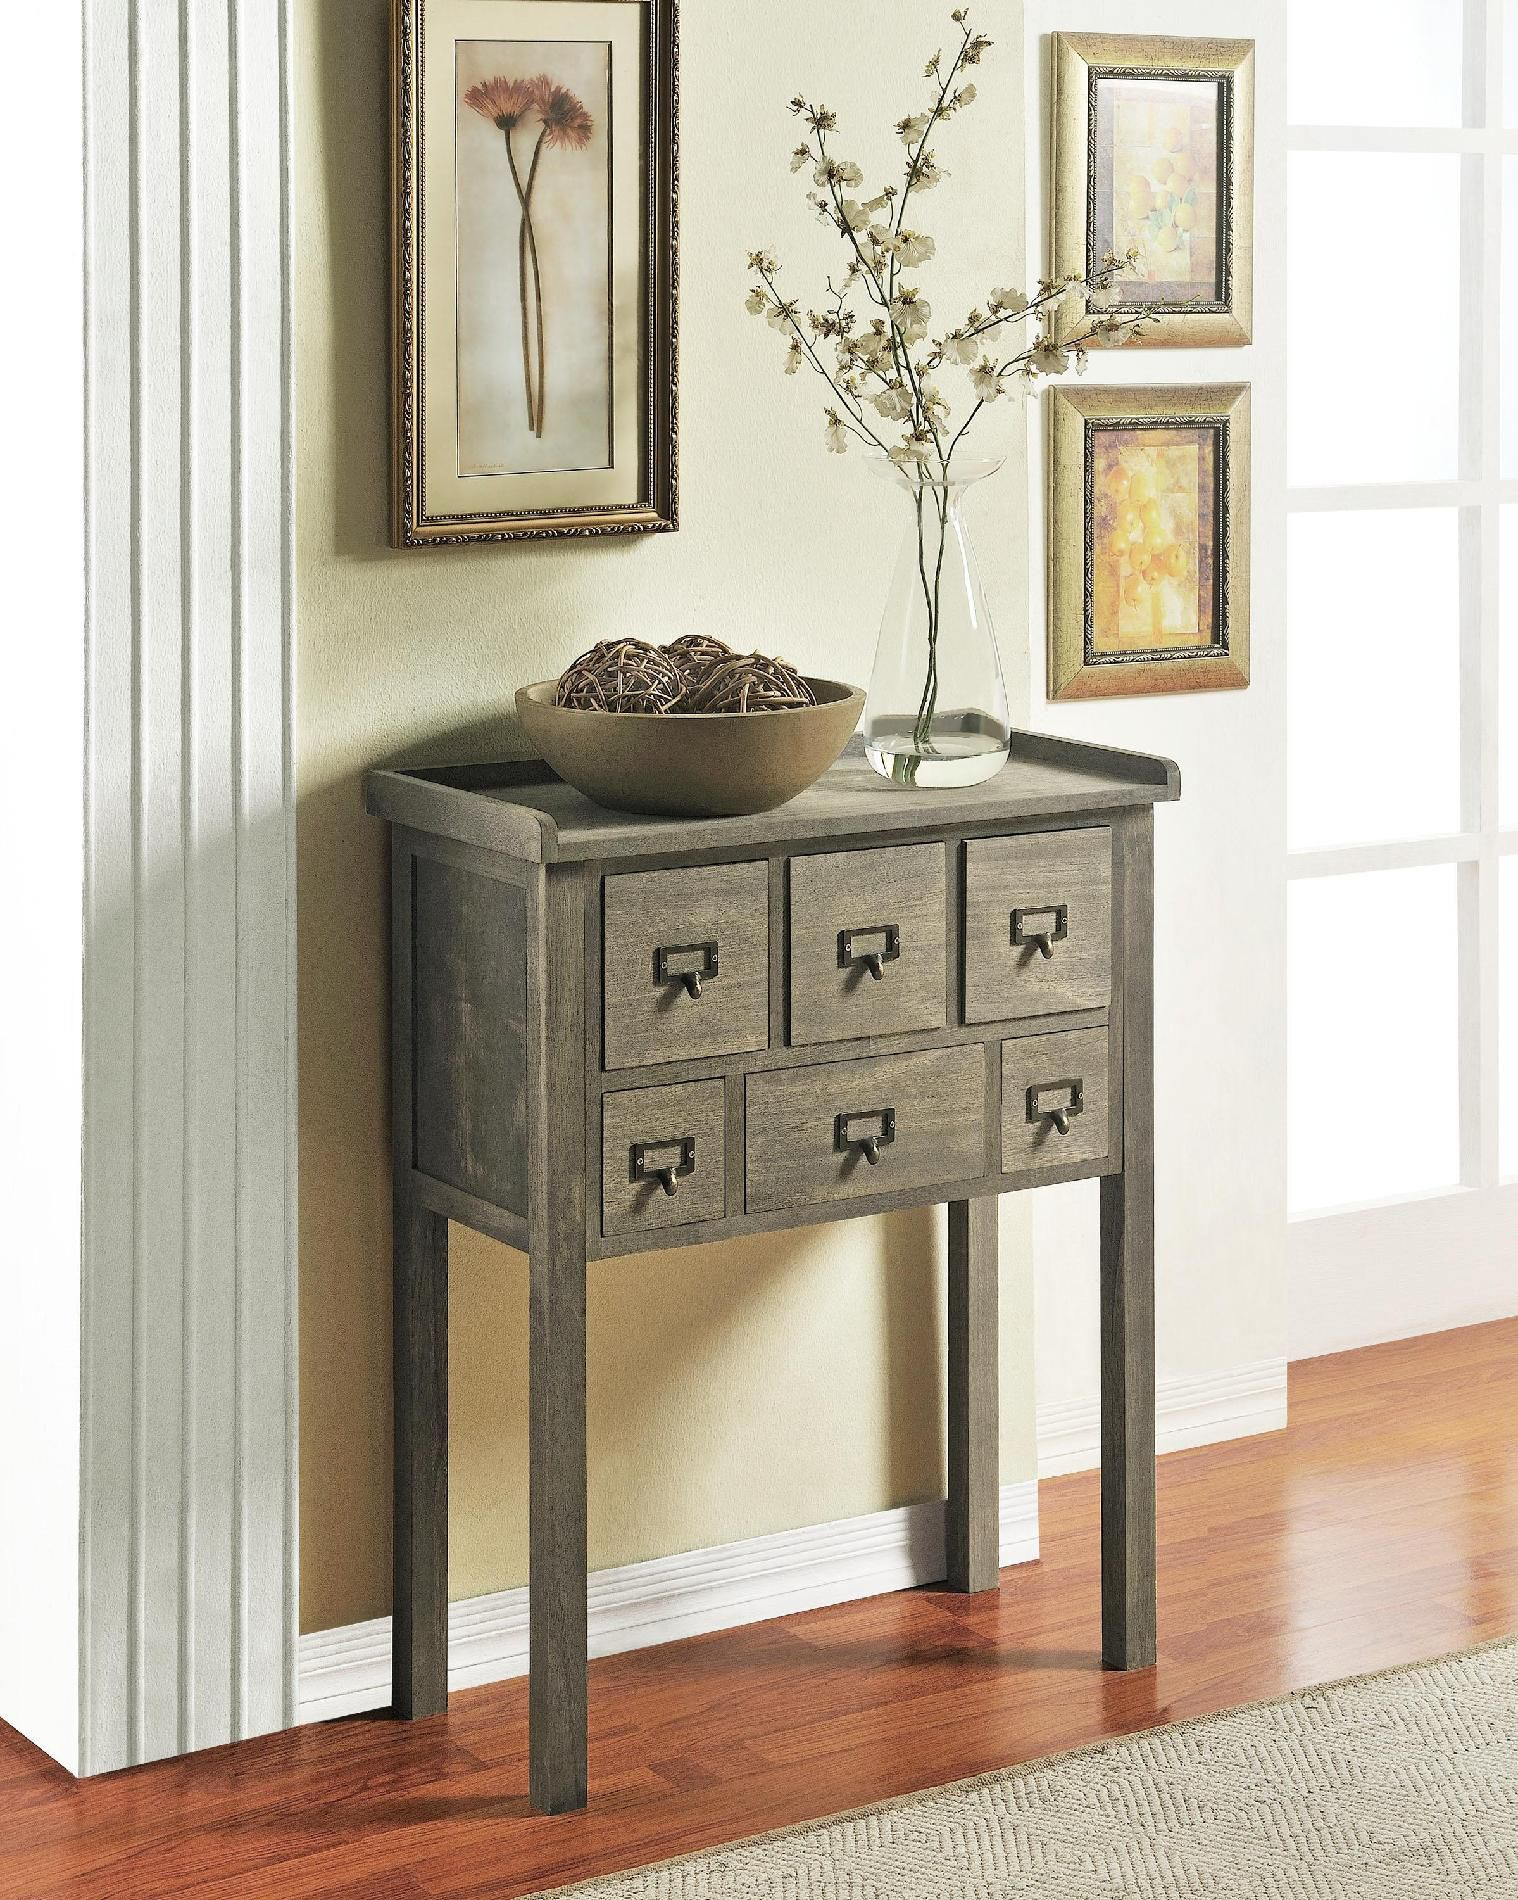 Side tables for hallways on pinterest hallway furniture console for my front hallway altra furniture 6 drawer accent console table in gray finish 5089096 lowest price online on all altra furniture 6 drawer accent geotapseo Image collections